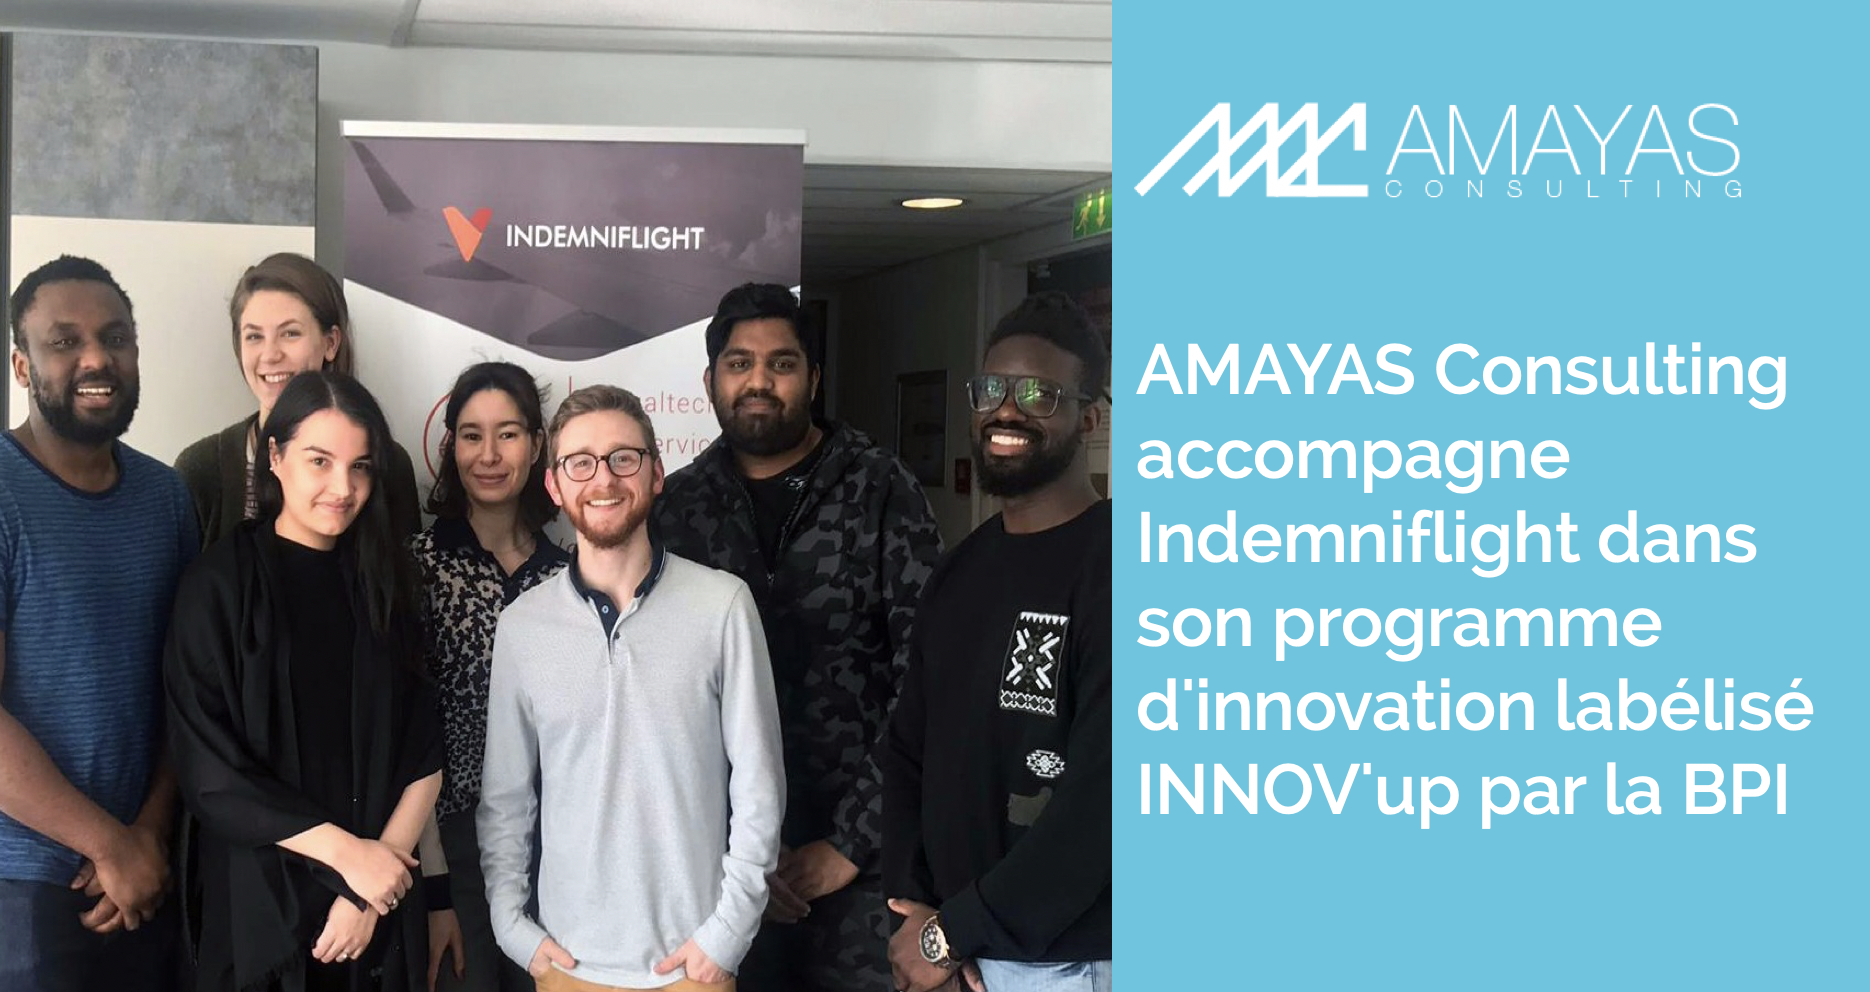 AMAYAS Consulting accompagne Indemniflight dans son programme d'innovation labelisé INNOV'up par la BPI